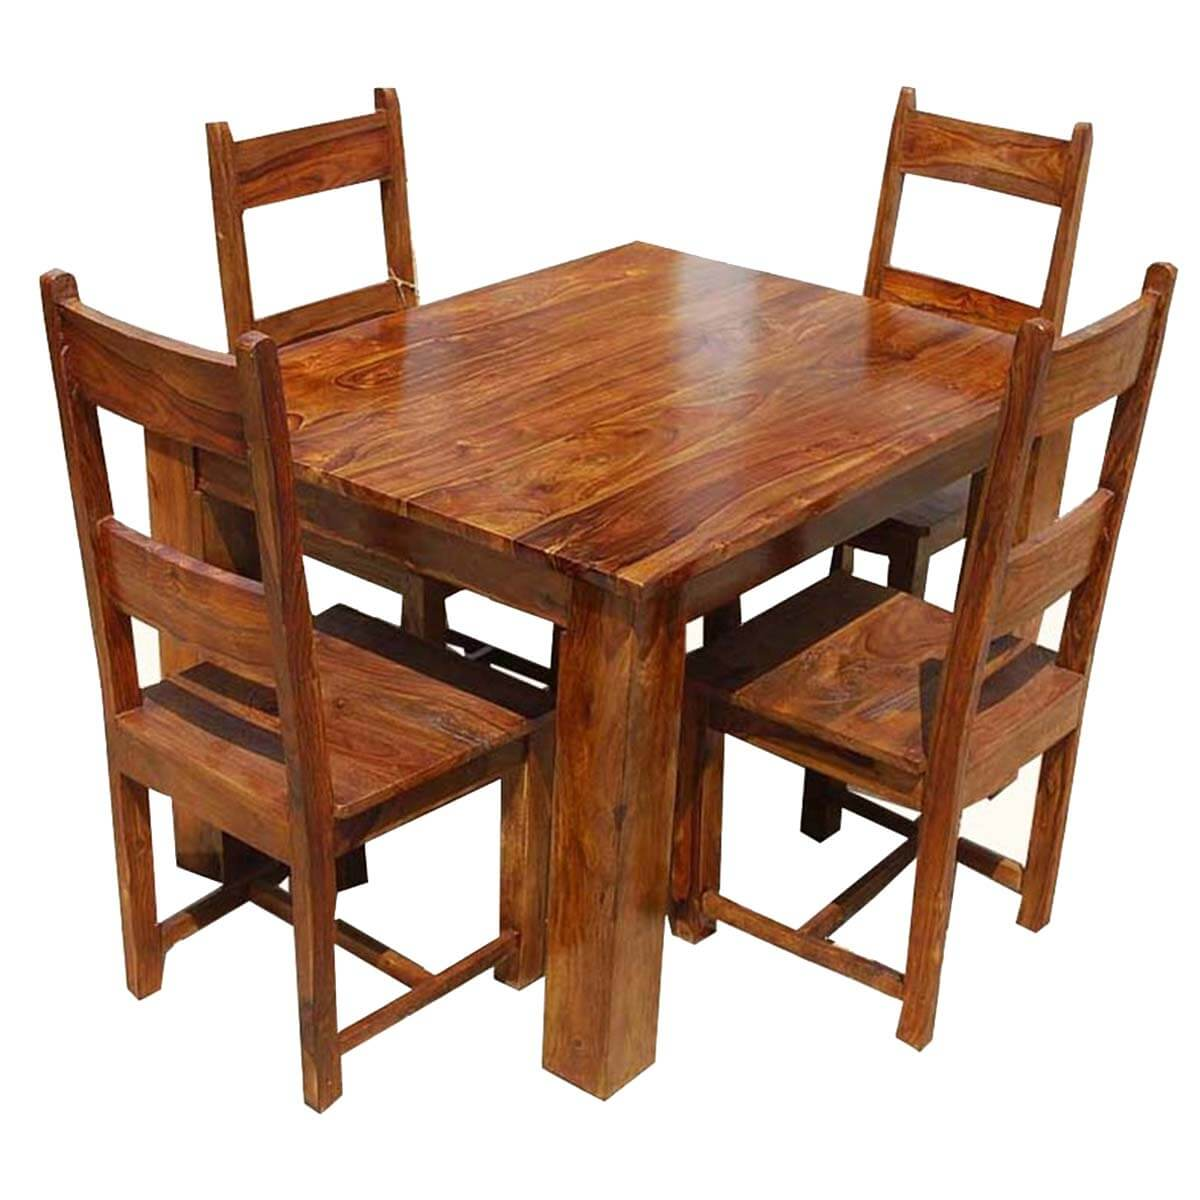 Rustic Wood Chairs Rustic Mission Santa Cruz Solid Wood Dining Room Set For 4